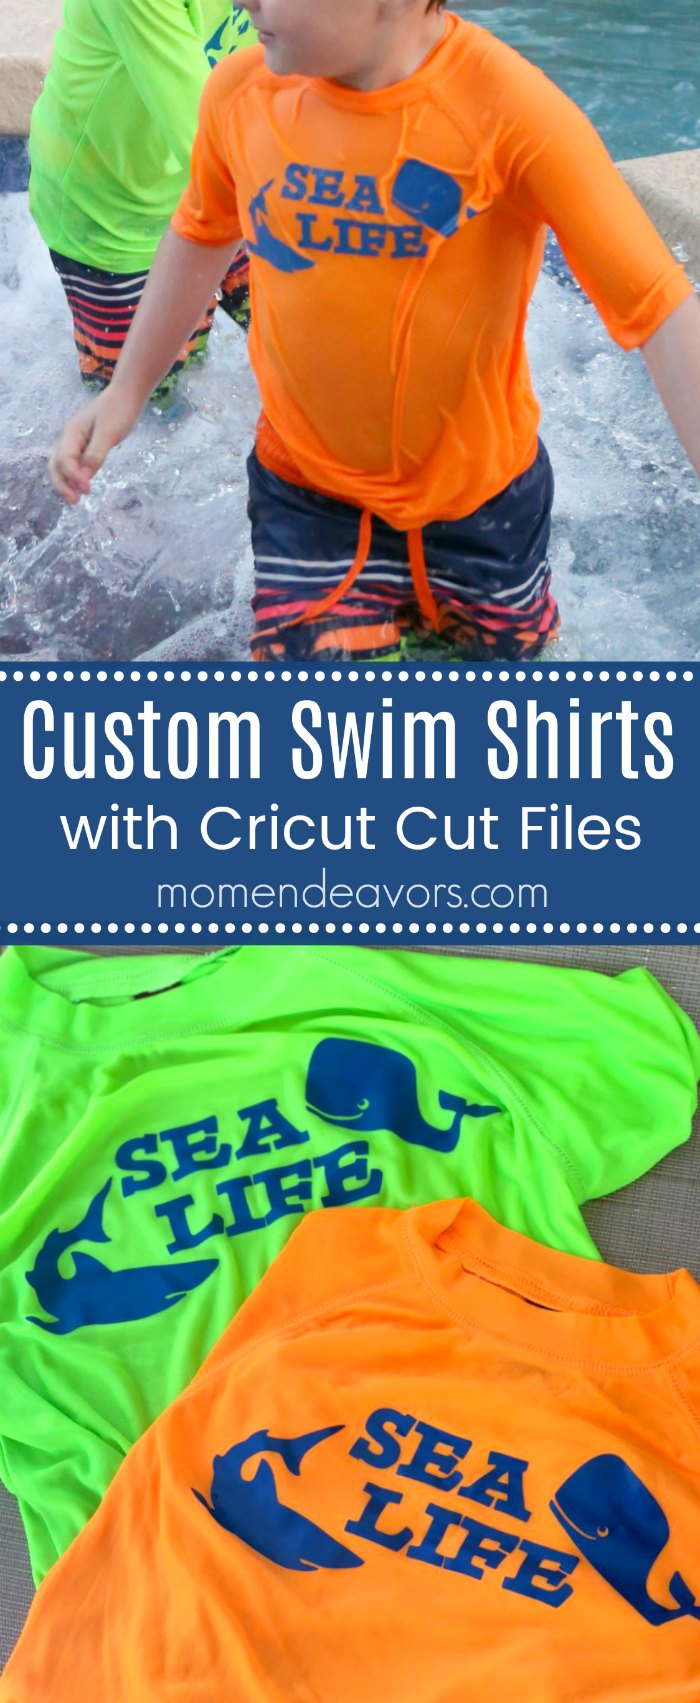 Custom Swim Shirts